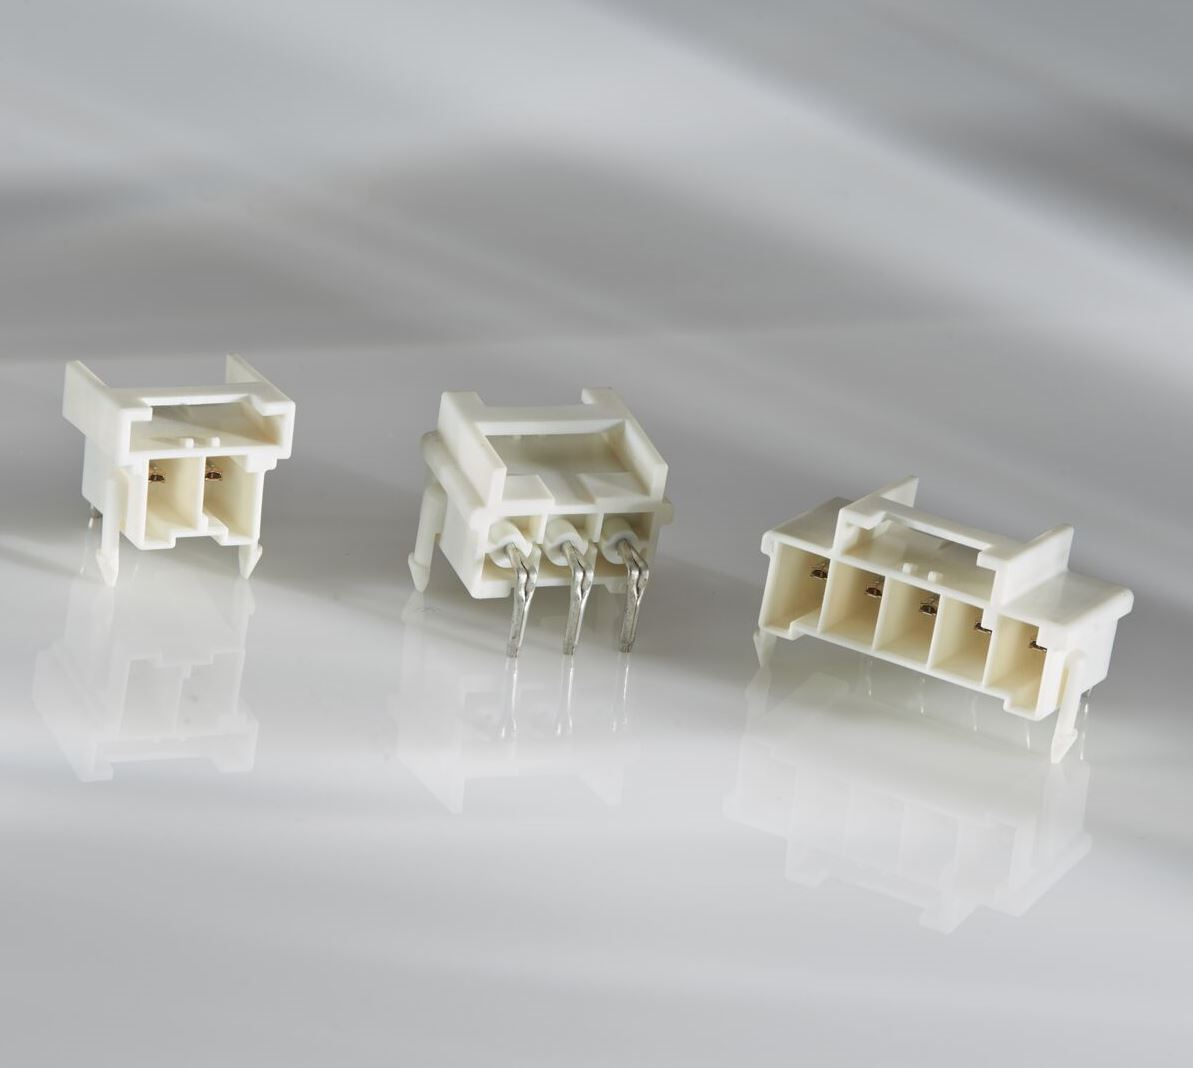 Connector Family Features new Headers for Through-Hole, Printed Circuit Board Applications